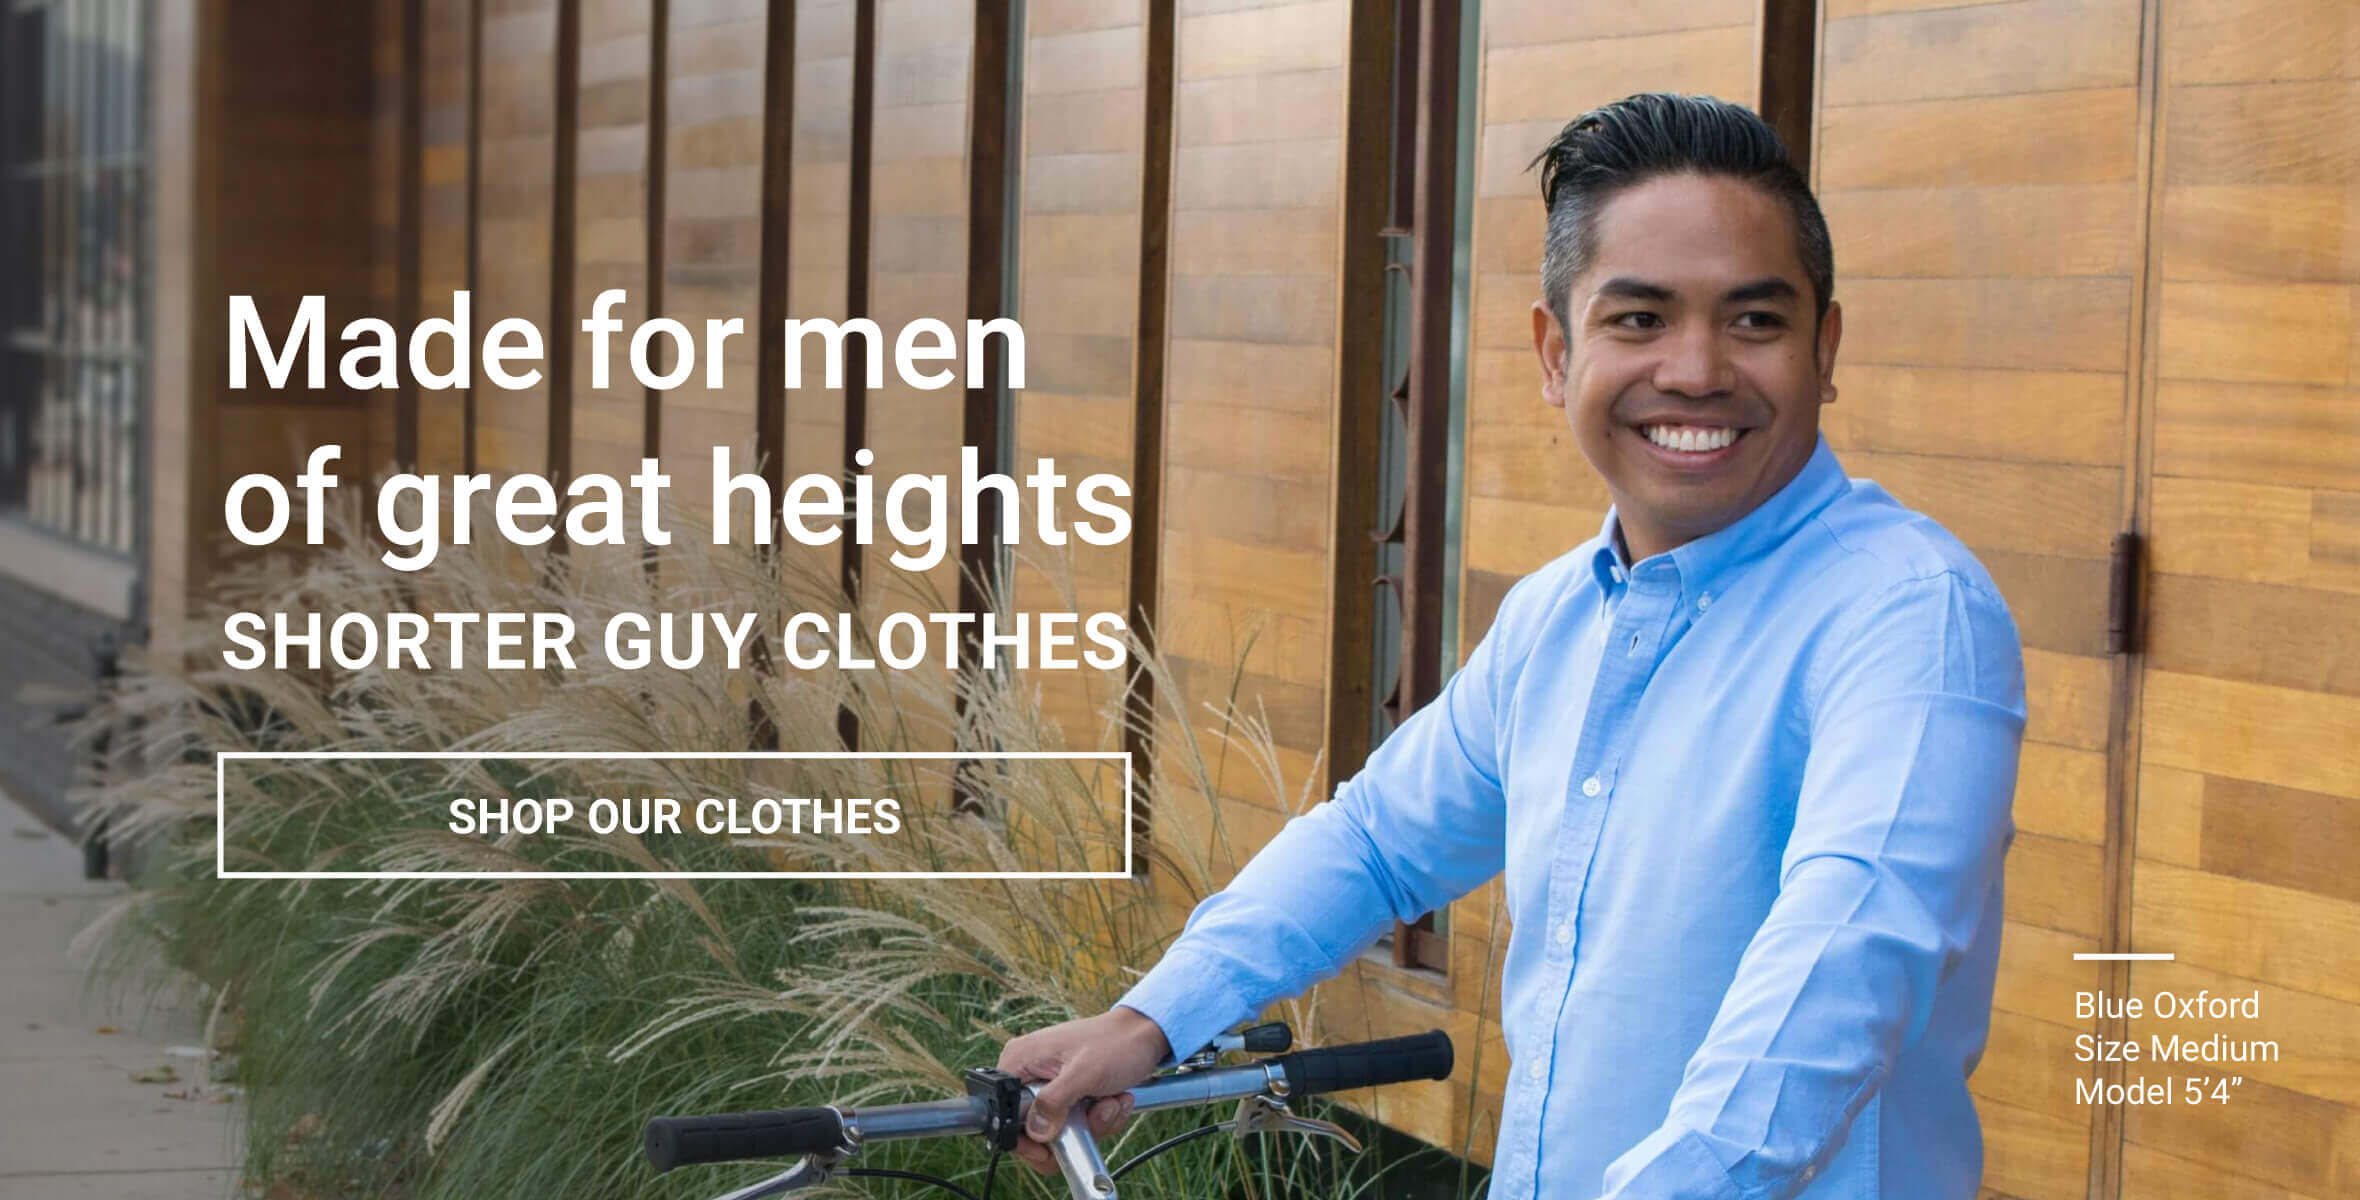 Made for men of great heights. Shorter Guy Clothes. Shop our clothes.